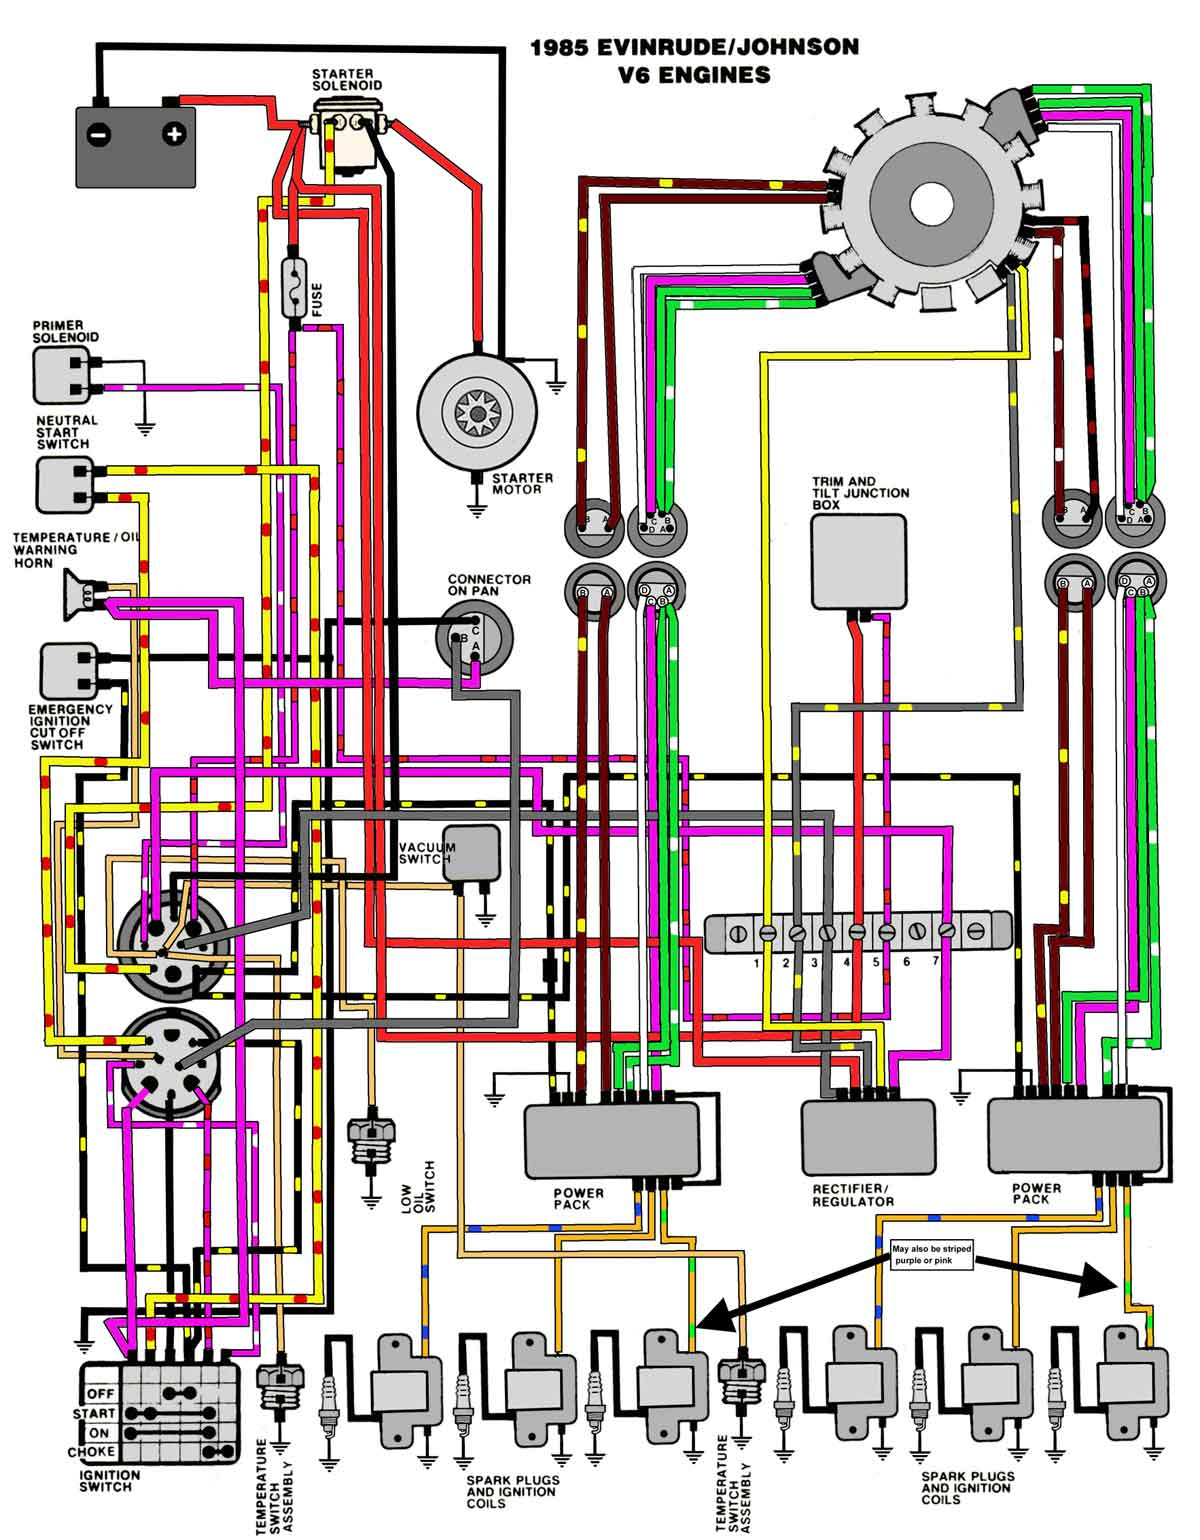 85_V6 mastertech marine evinrude johnson outboard wiring diagrams OMC Inboard Outboard Wiring Diagrams at edmiracle.co